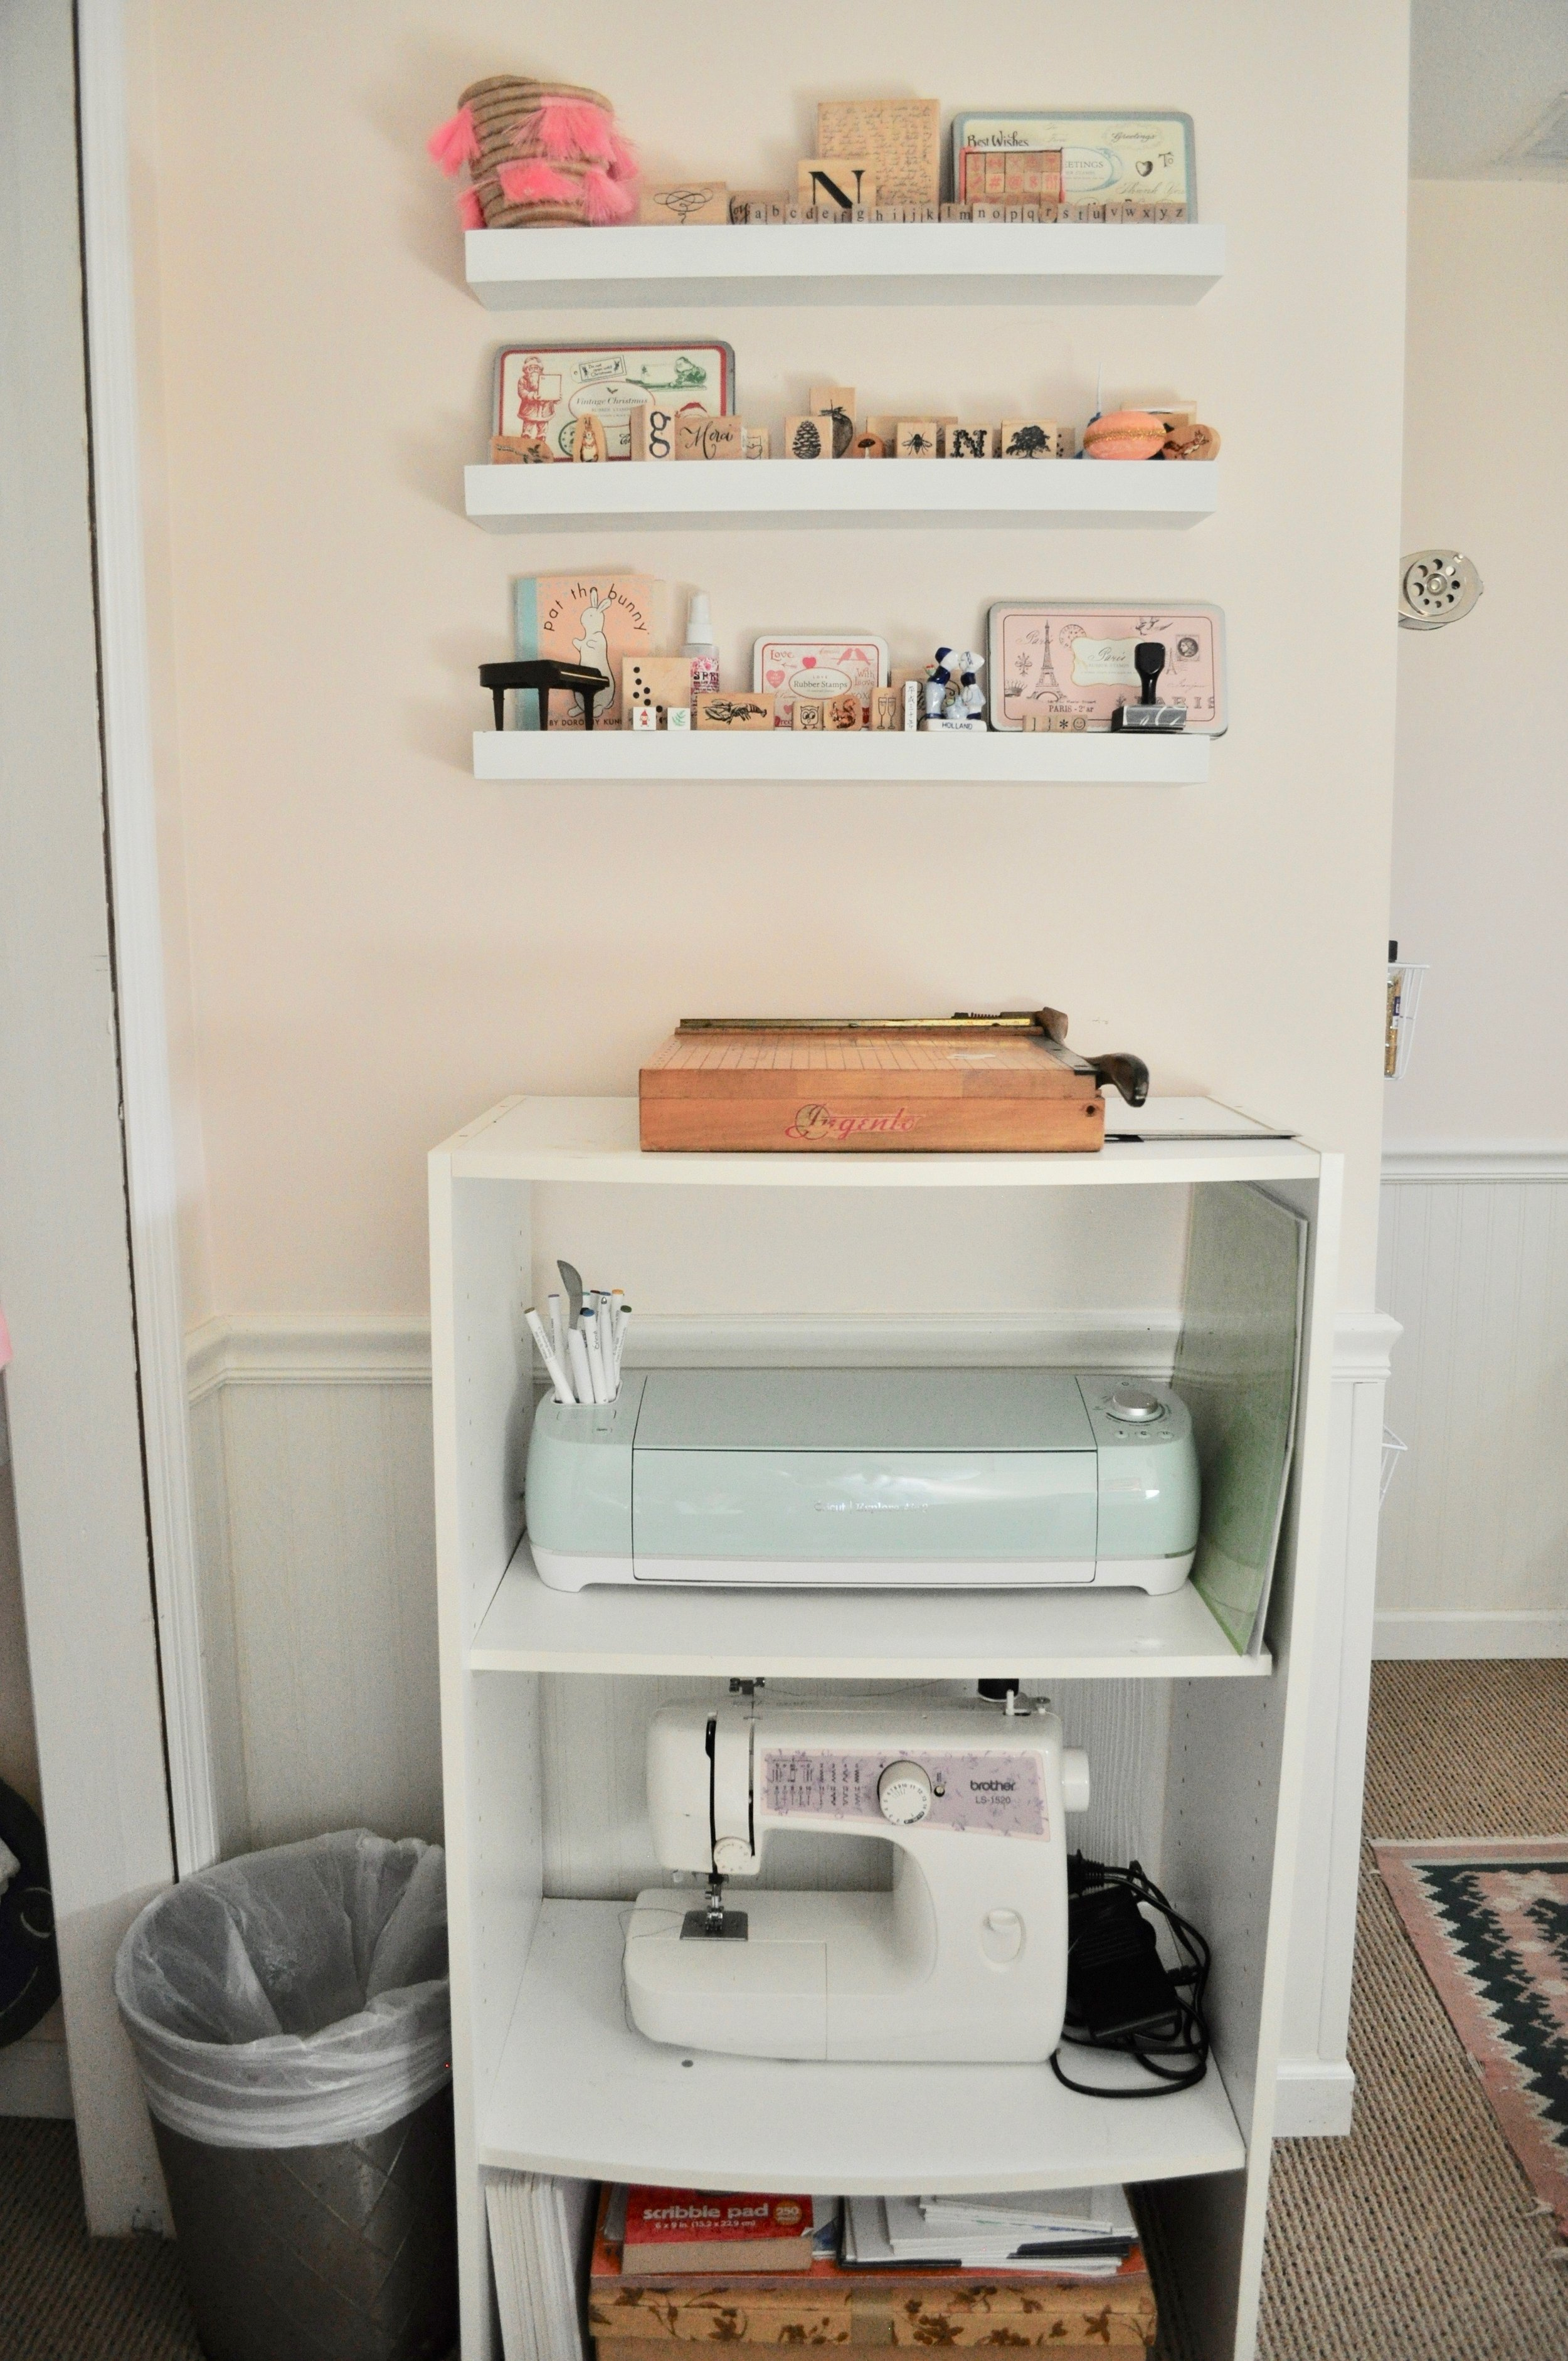 I can see all of my stamps displayed on floating shelves, and use this chopping block paper cutter at least once a week; shelves below house my Cricut and sewing machine